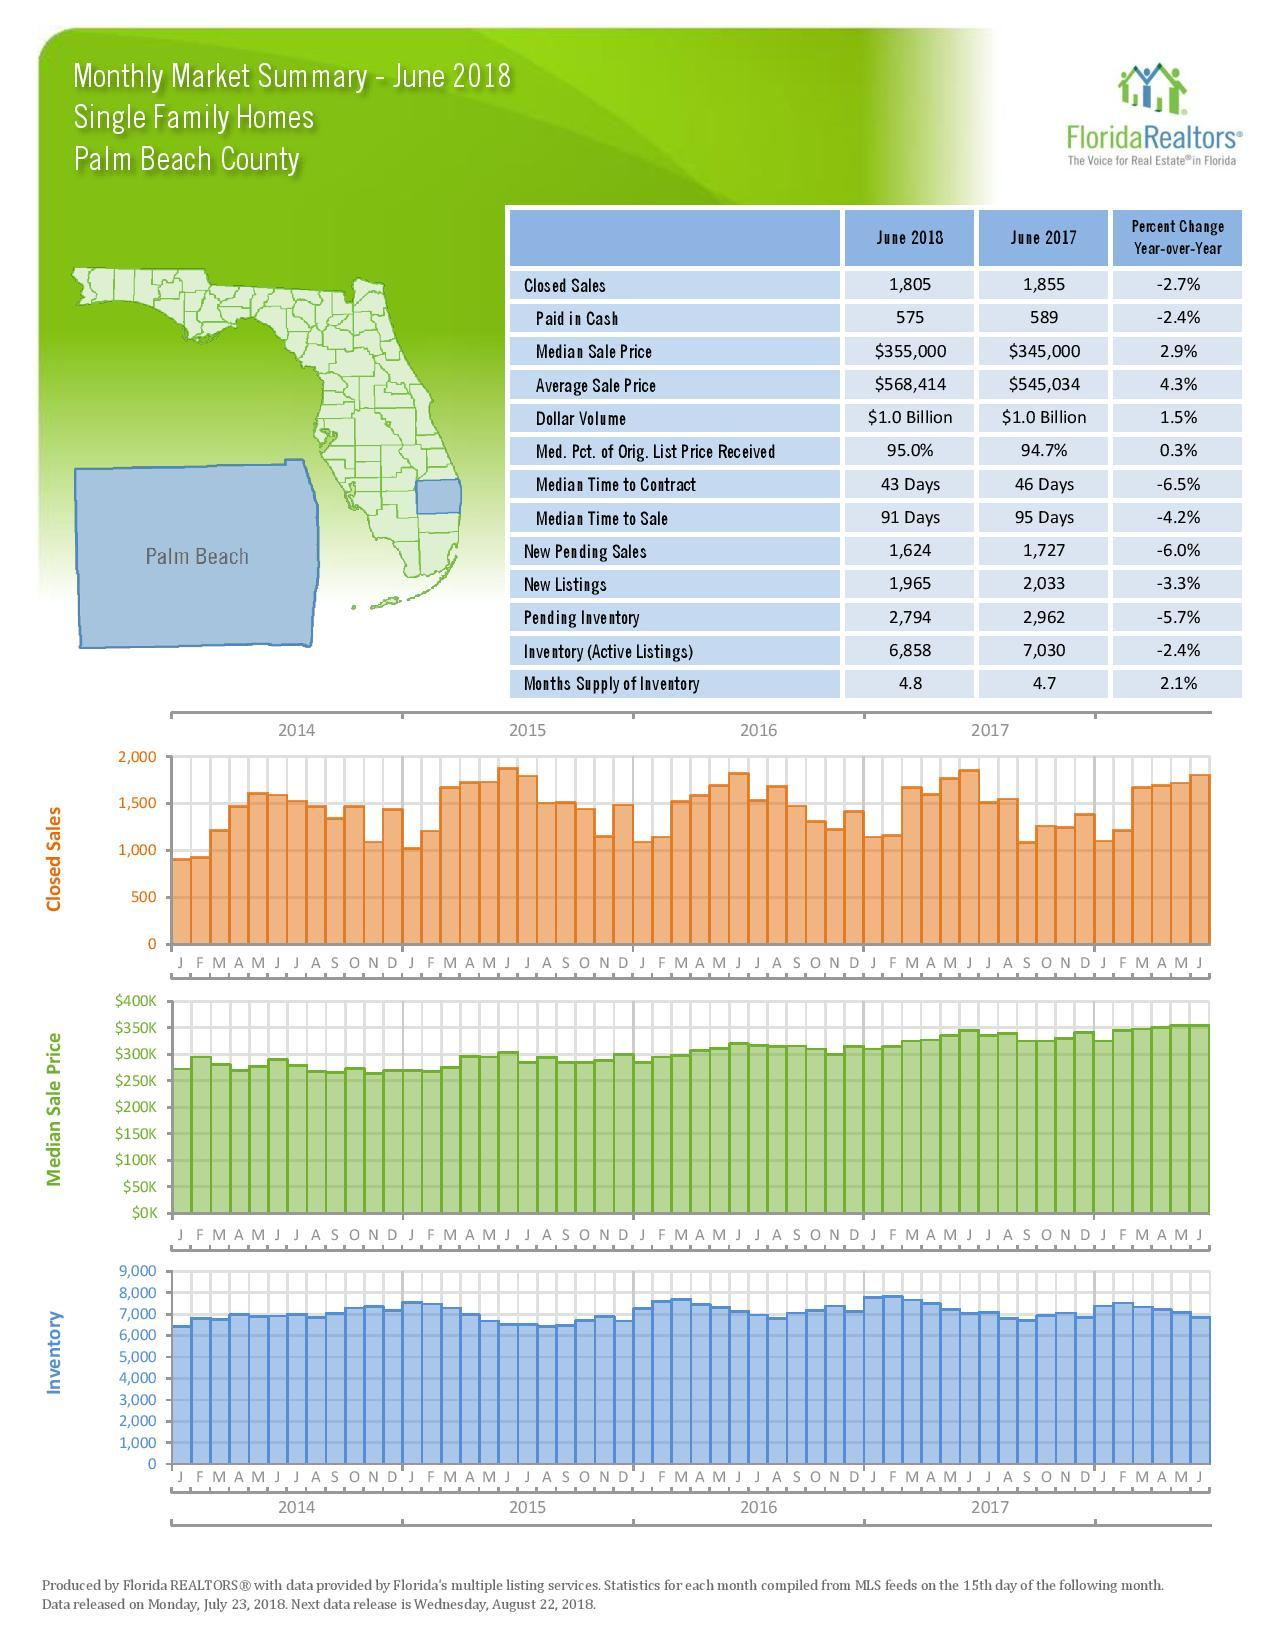 May 2018 Local Market Update, Palm Beach, FL (Florida Realtors)